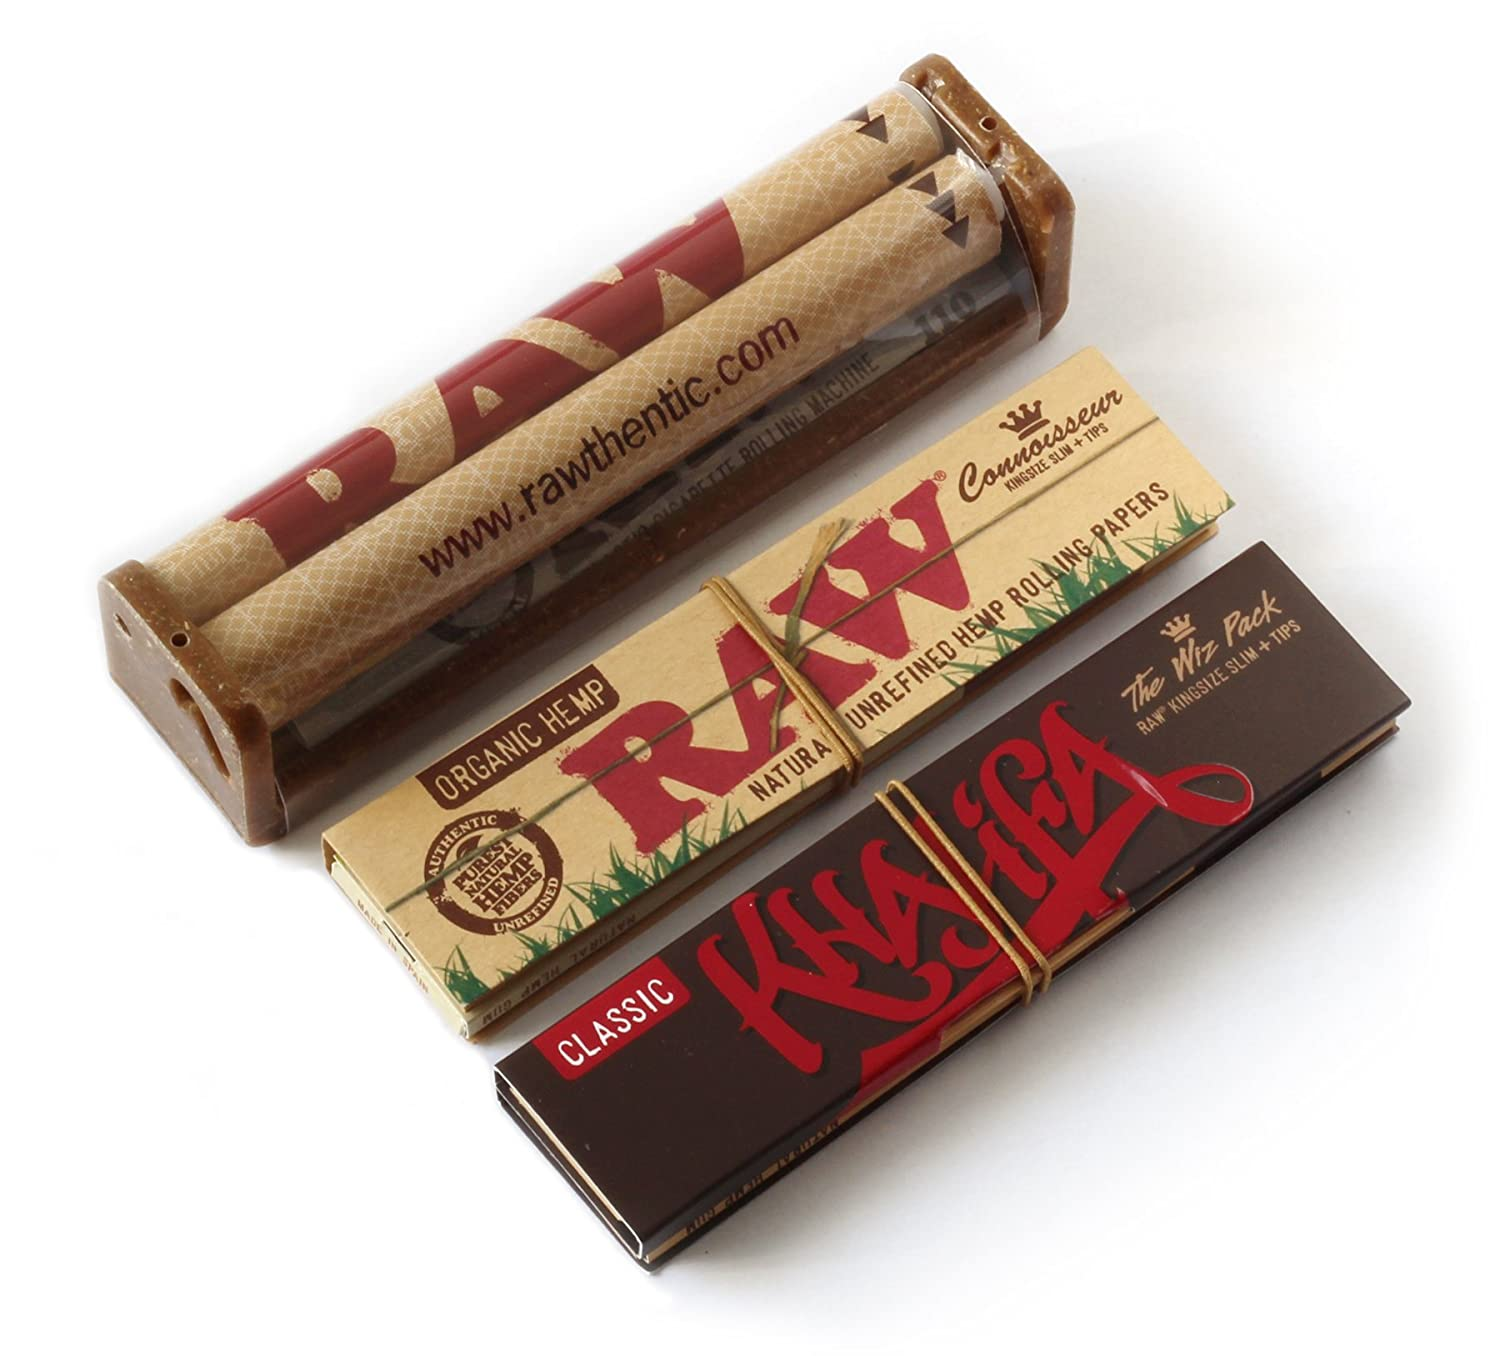 New Product From Raw Tips - 3 Booklets by Trendz RAW King Size Slim Connoisseur Rolling Papers The Wiz Pack Wiz Khalifa